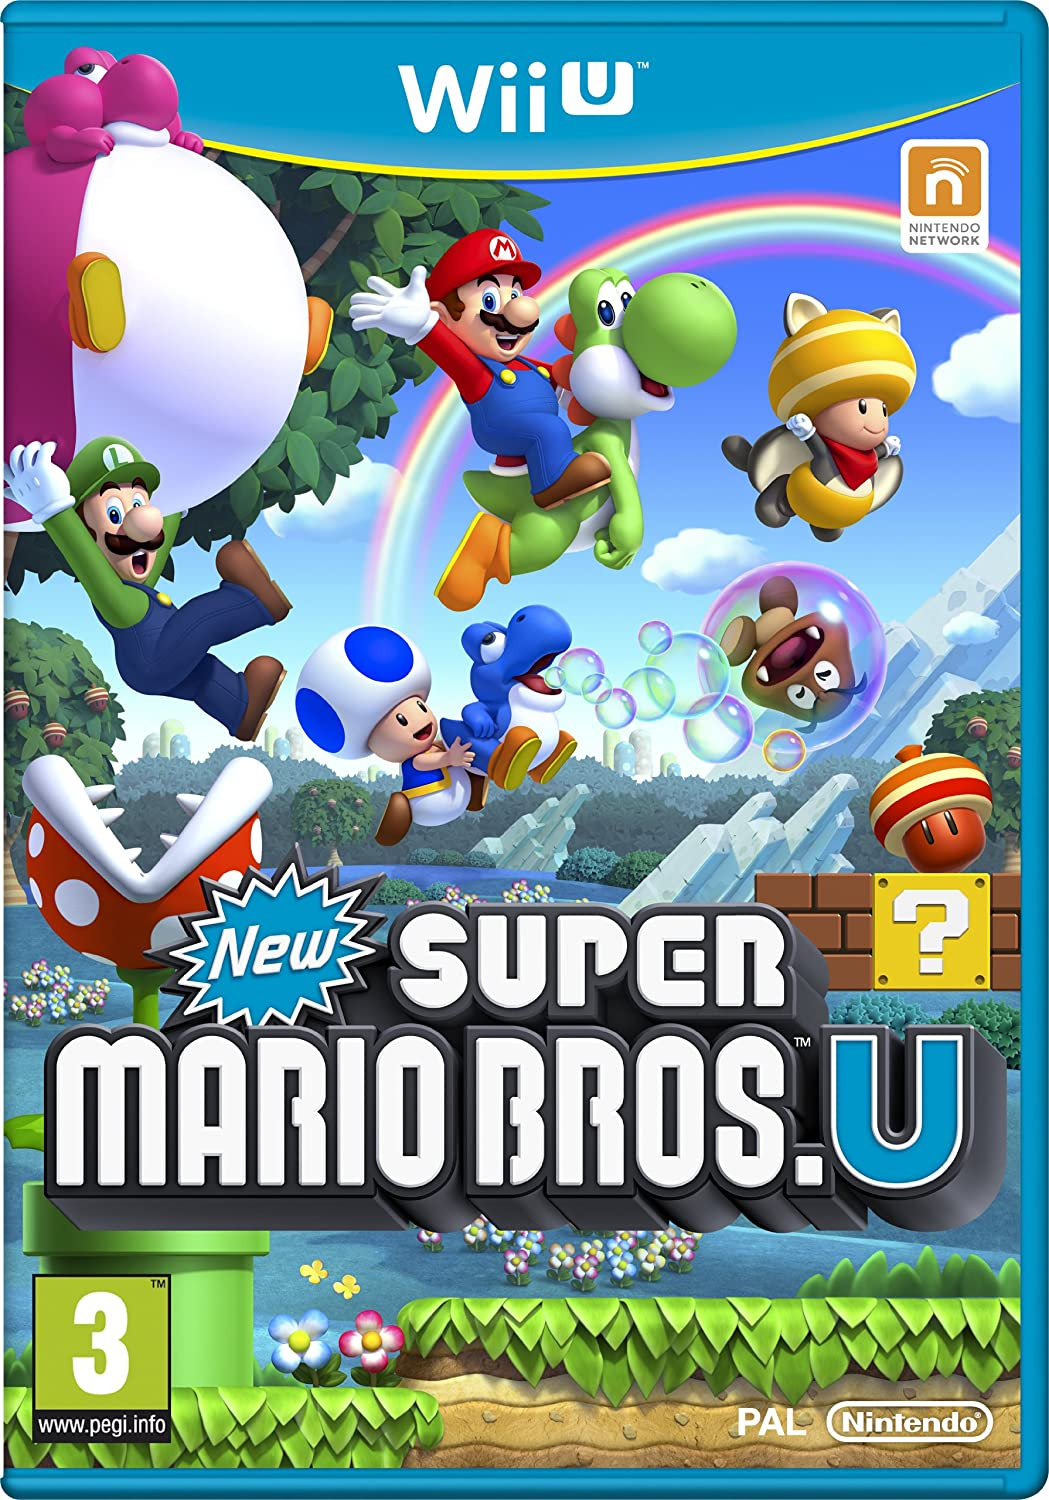 Nintendo New Super Mario Bros. U, Wii U - Juego (Wii U): Amazon.es ...